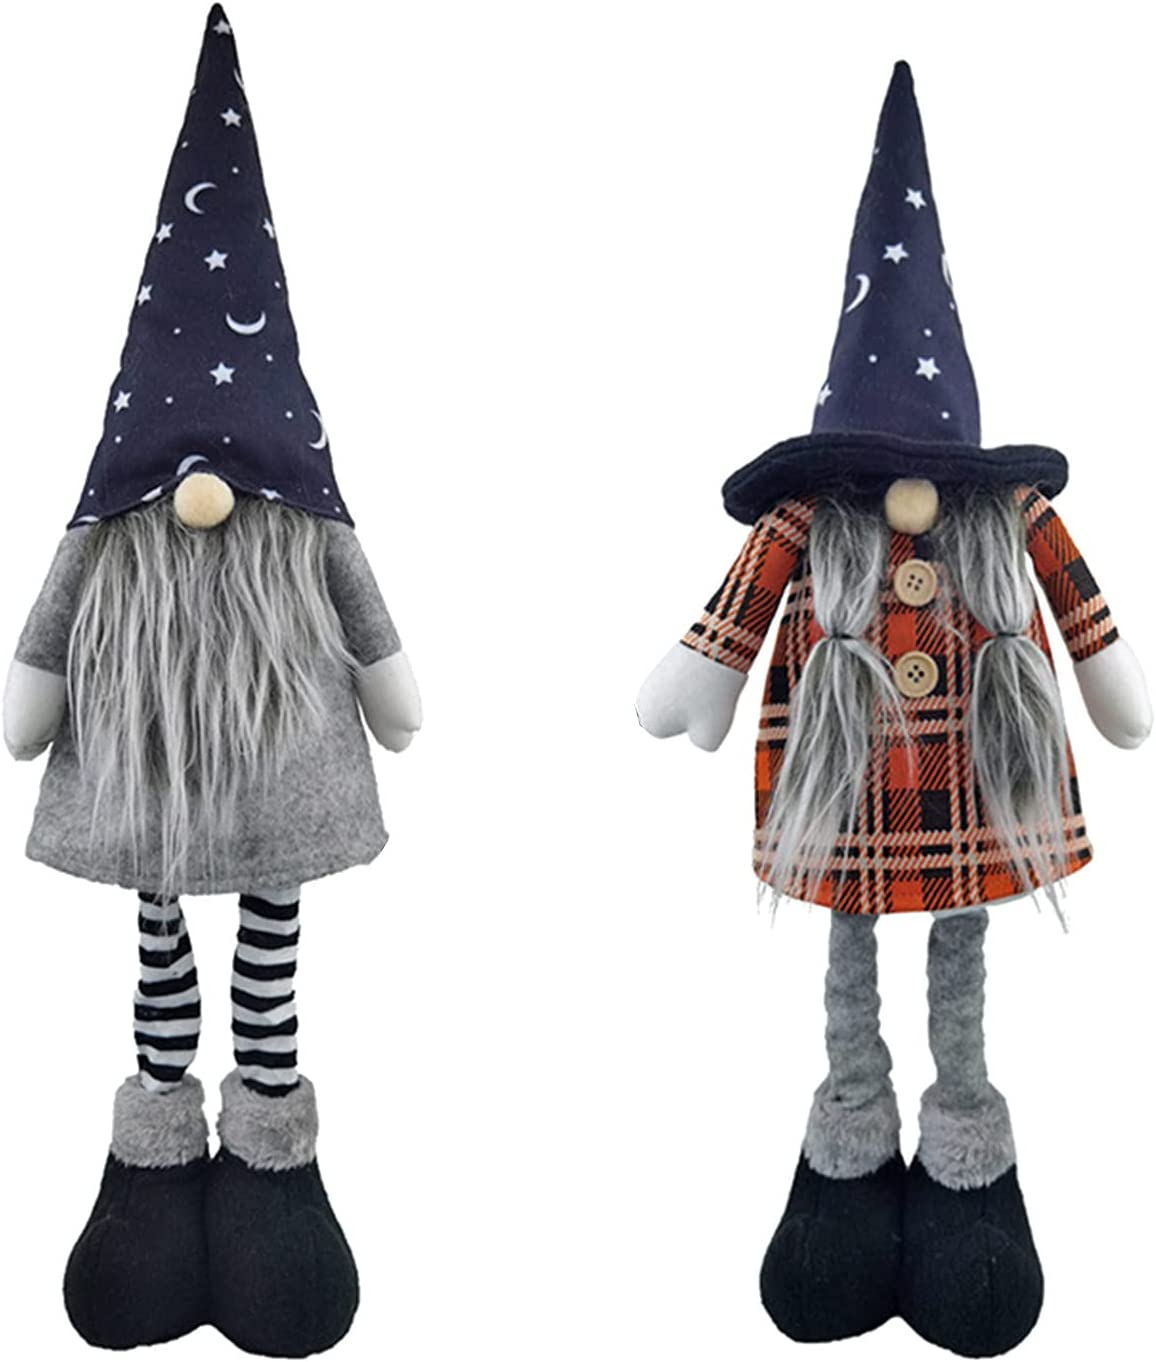 Halloween Plush Large special price !! Gnomes Super Special SALE held Faceless Doll Han Ornaments Dwarf Desktop